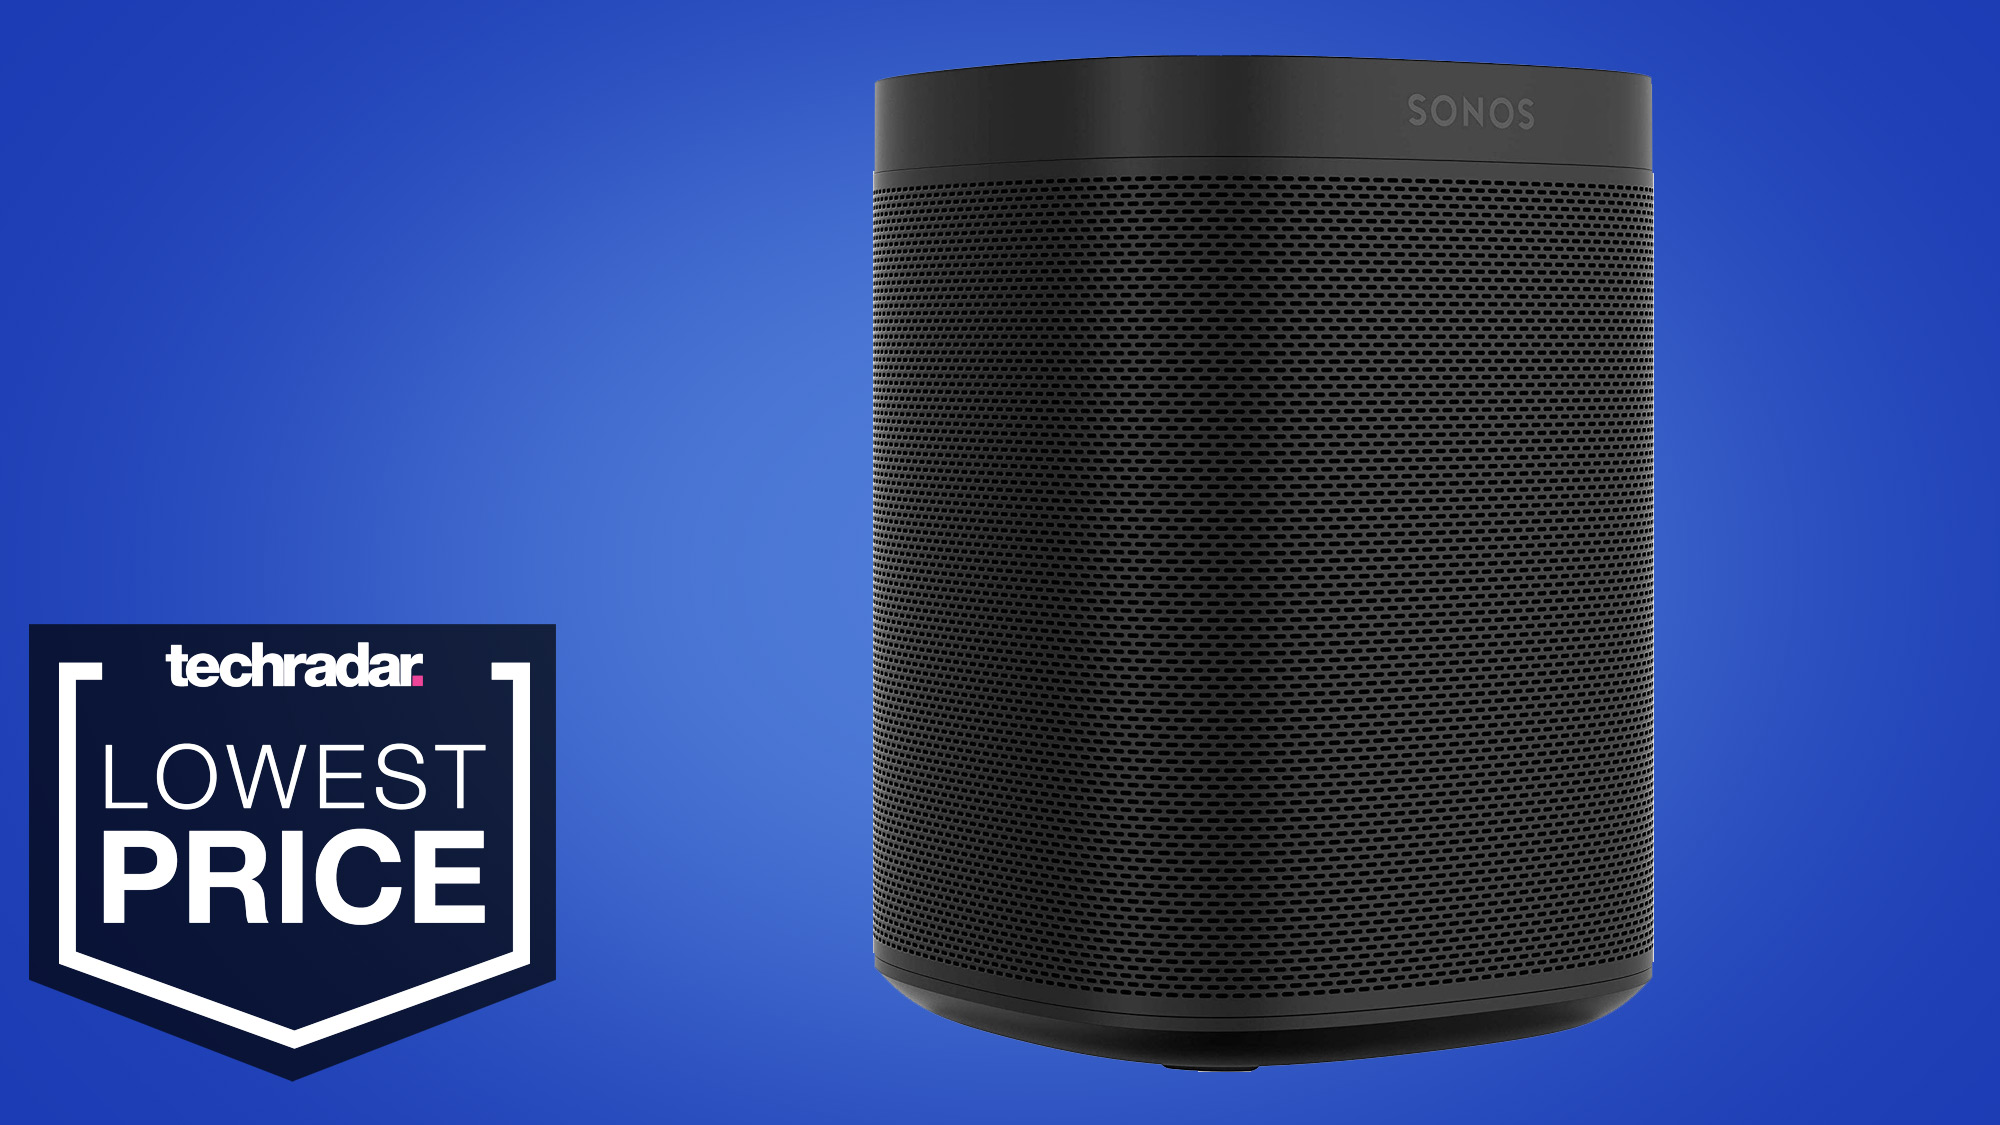 sonos-one-hits-lowest-ever-price-at-just-149